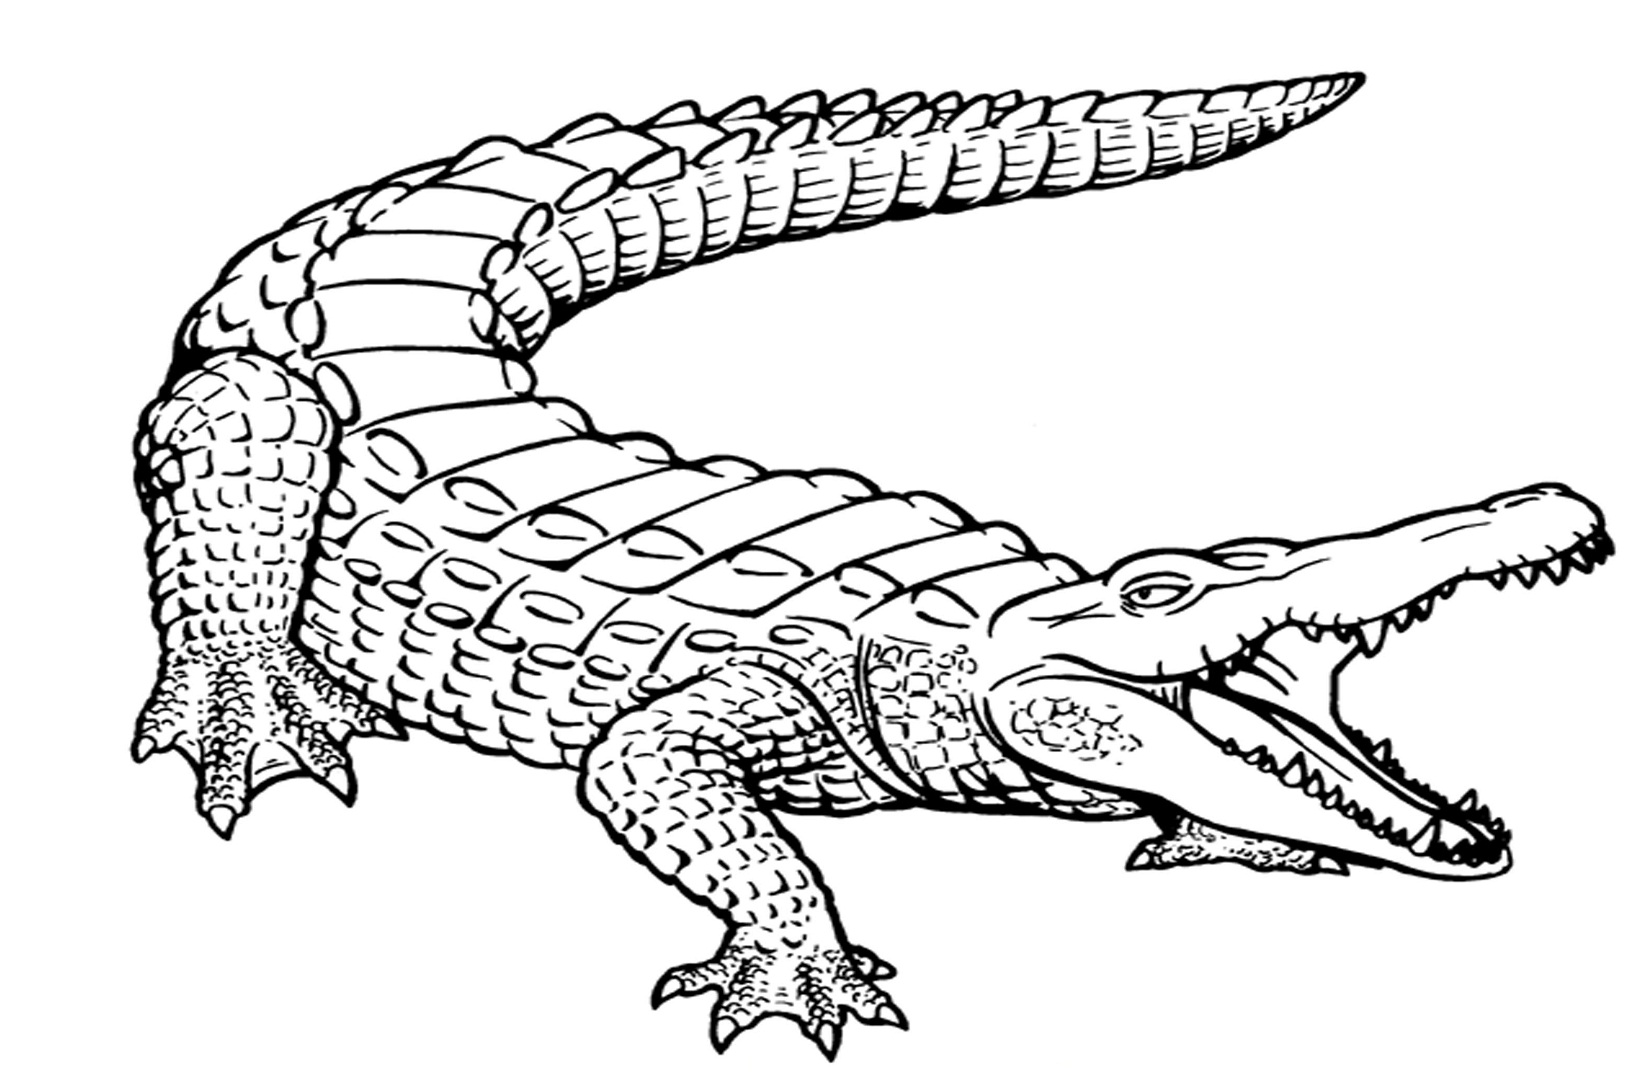 coloring page alligator free printable alligator coloring pages for kids page alligator coloring